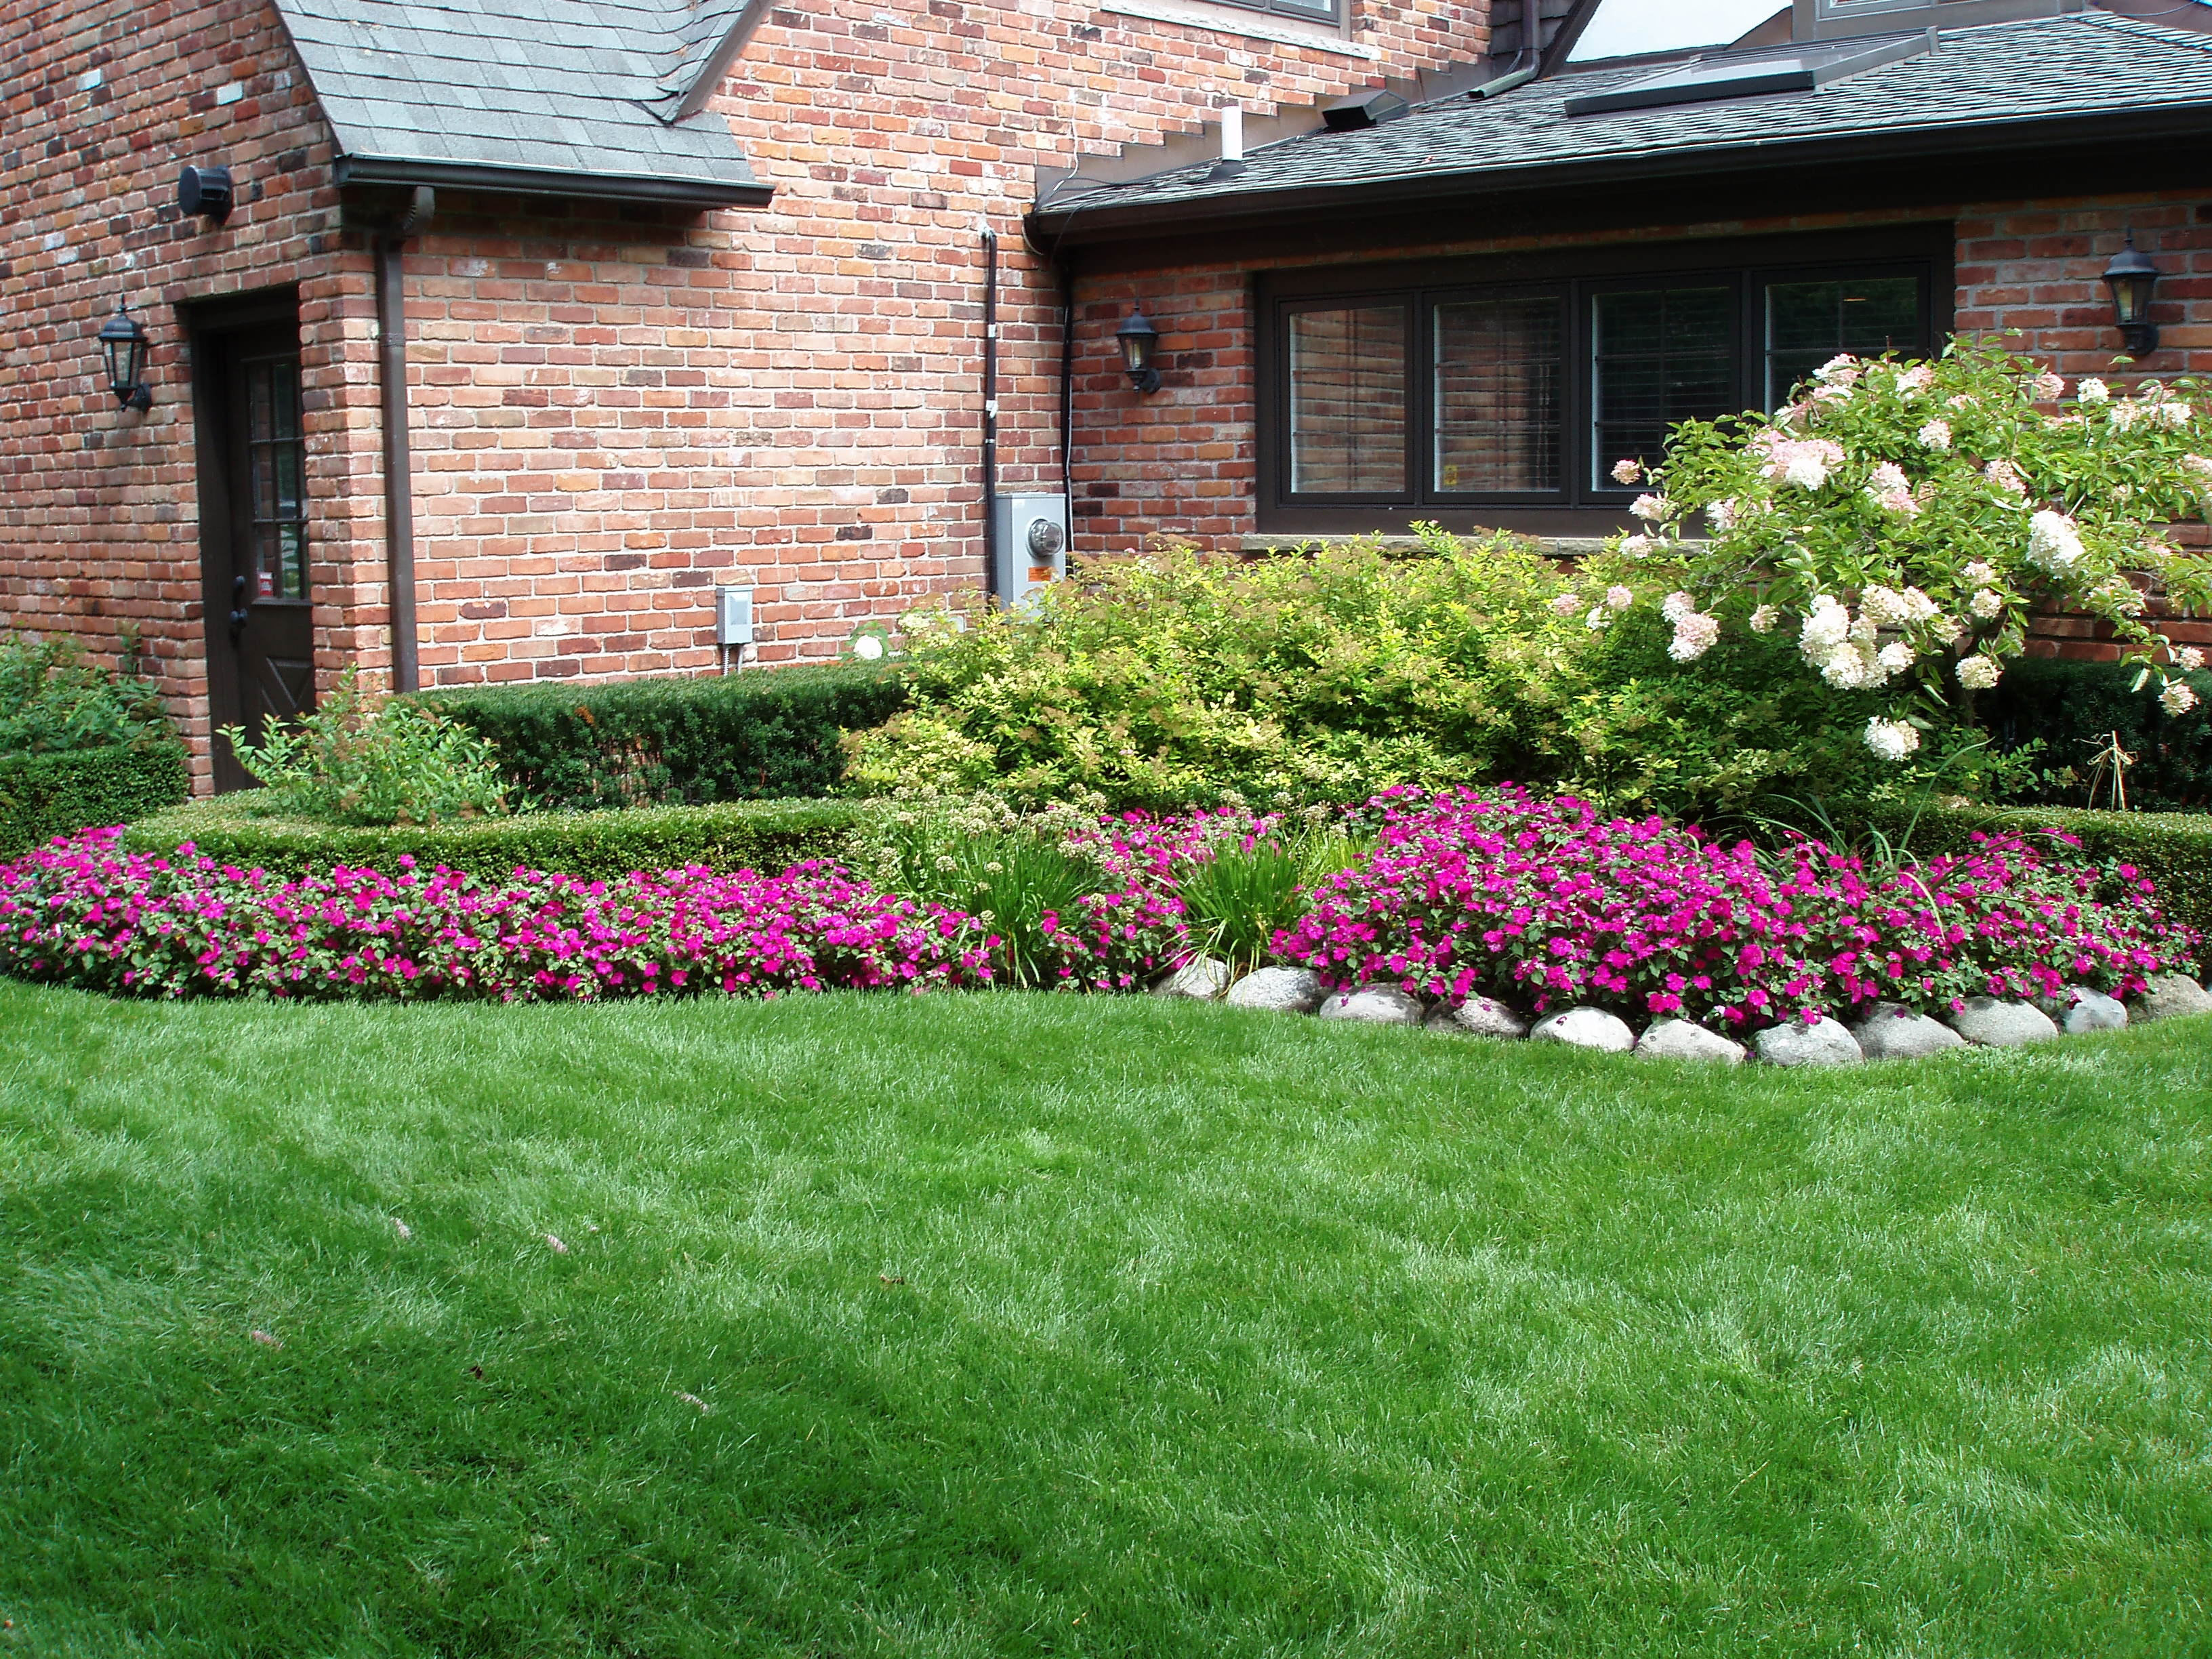 Perennials total lawn care inc full lawn maintenance for Garden and landscaping ideas